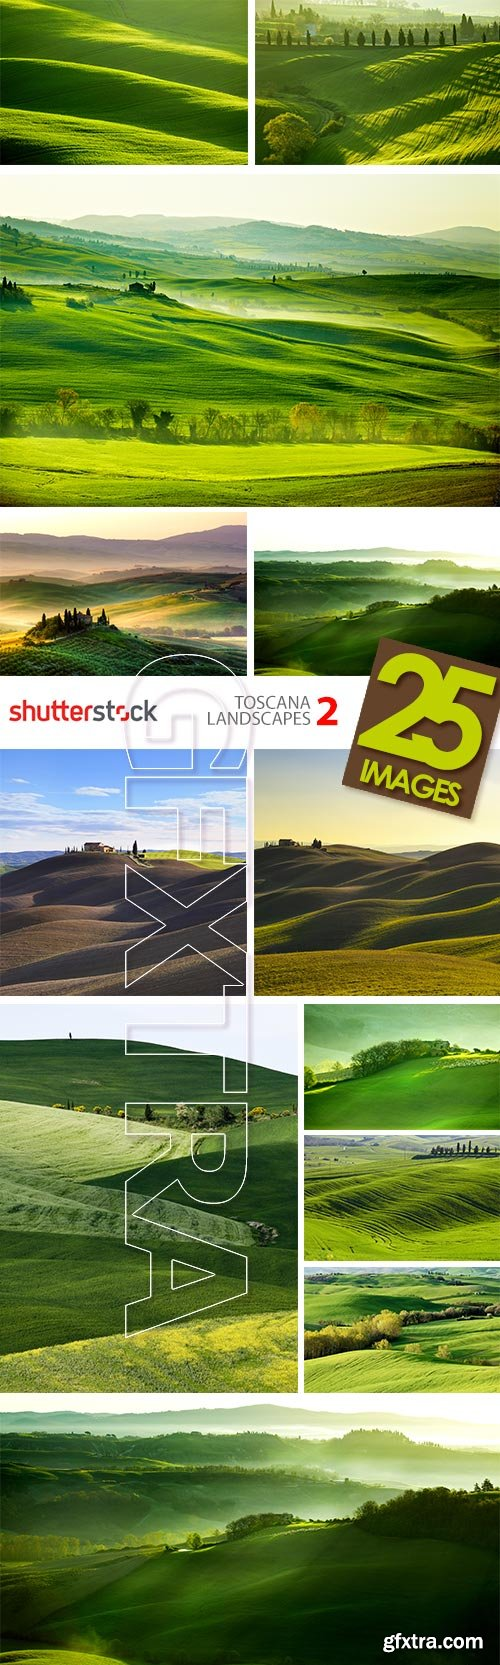 Toscana Landscapes II, 25xJPGs